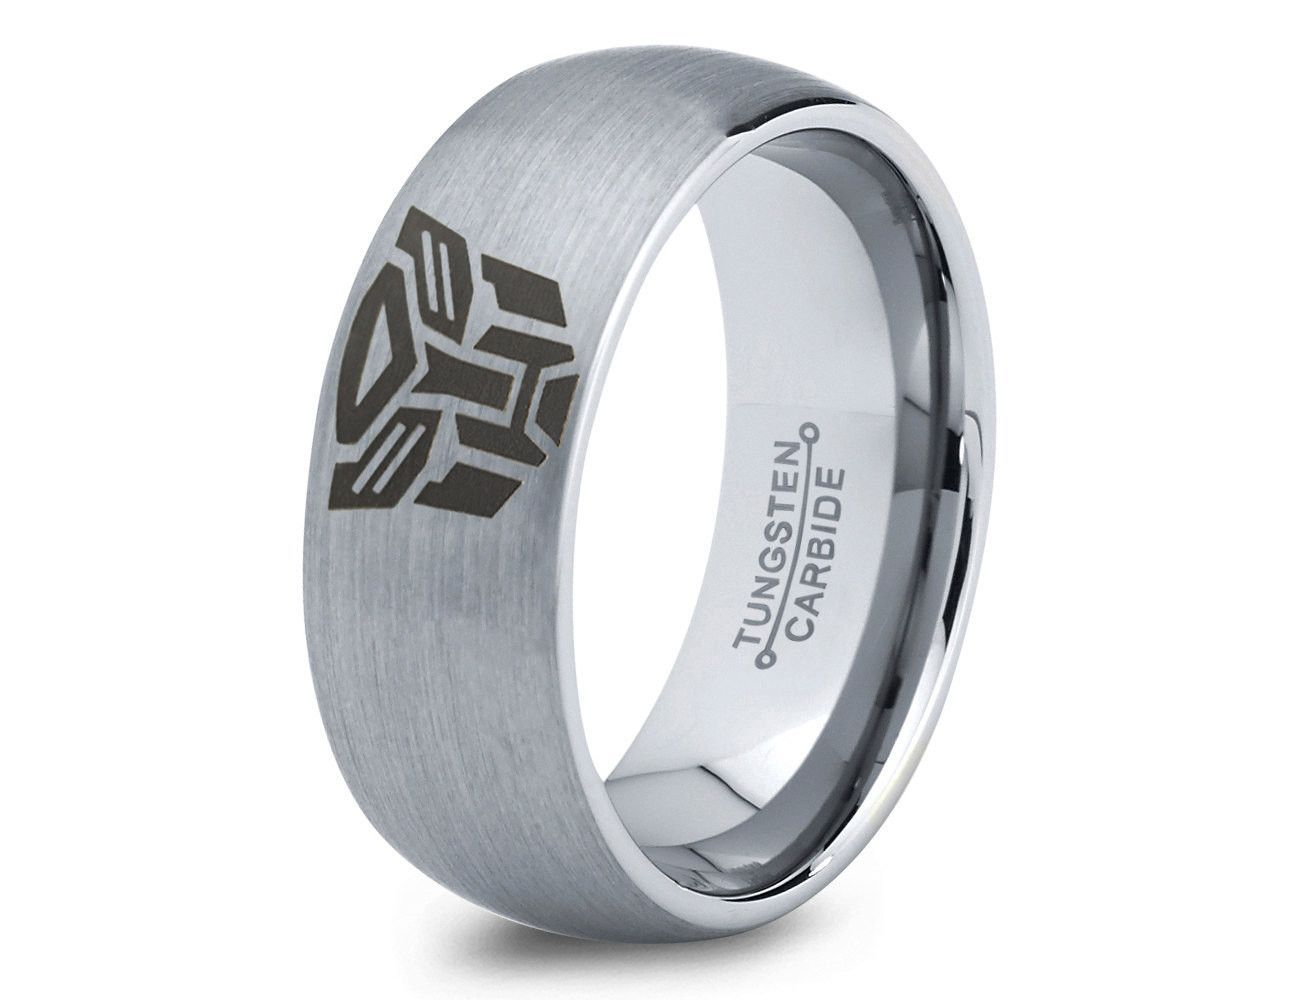 download superheroes beautiful superhero corners ideas wedding rings